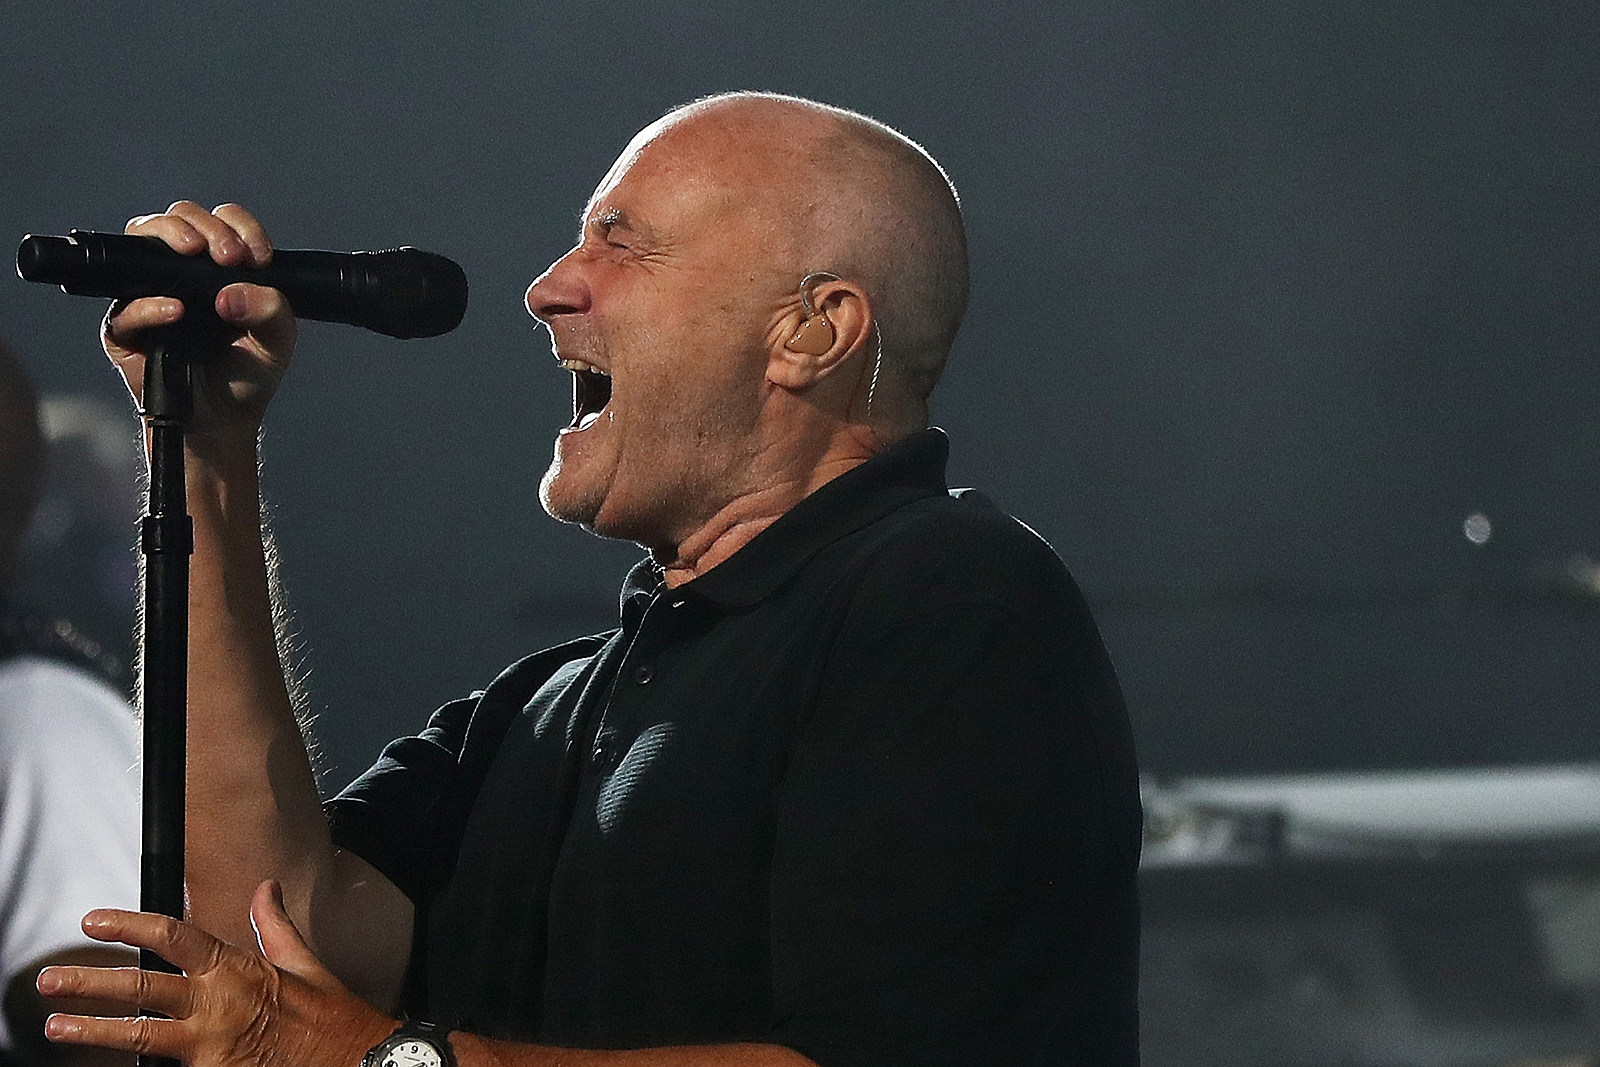 Phil Collins Leads Genesis-Heavy 'Against All Odds' Soundtrack